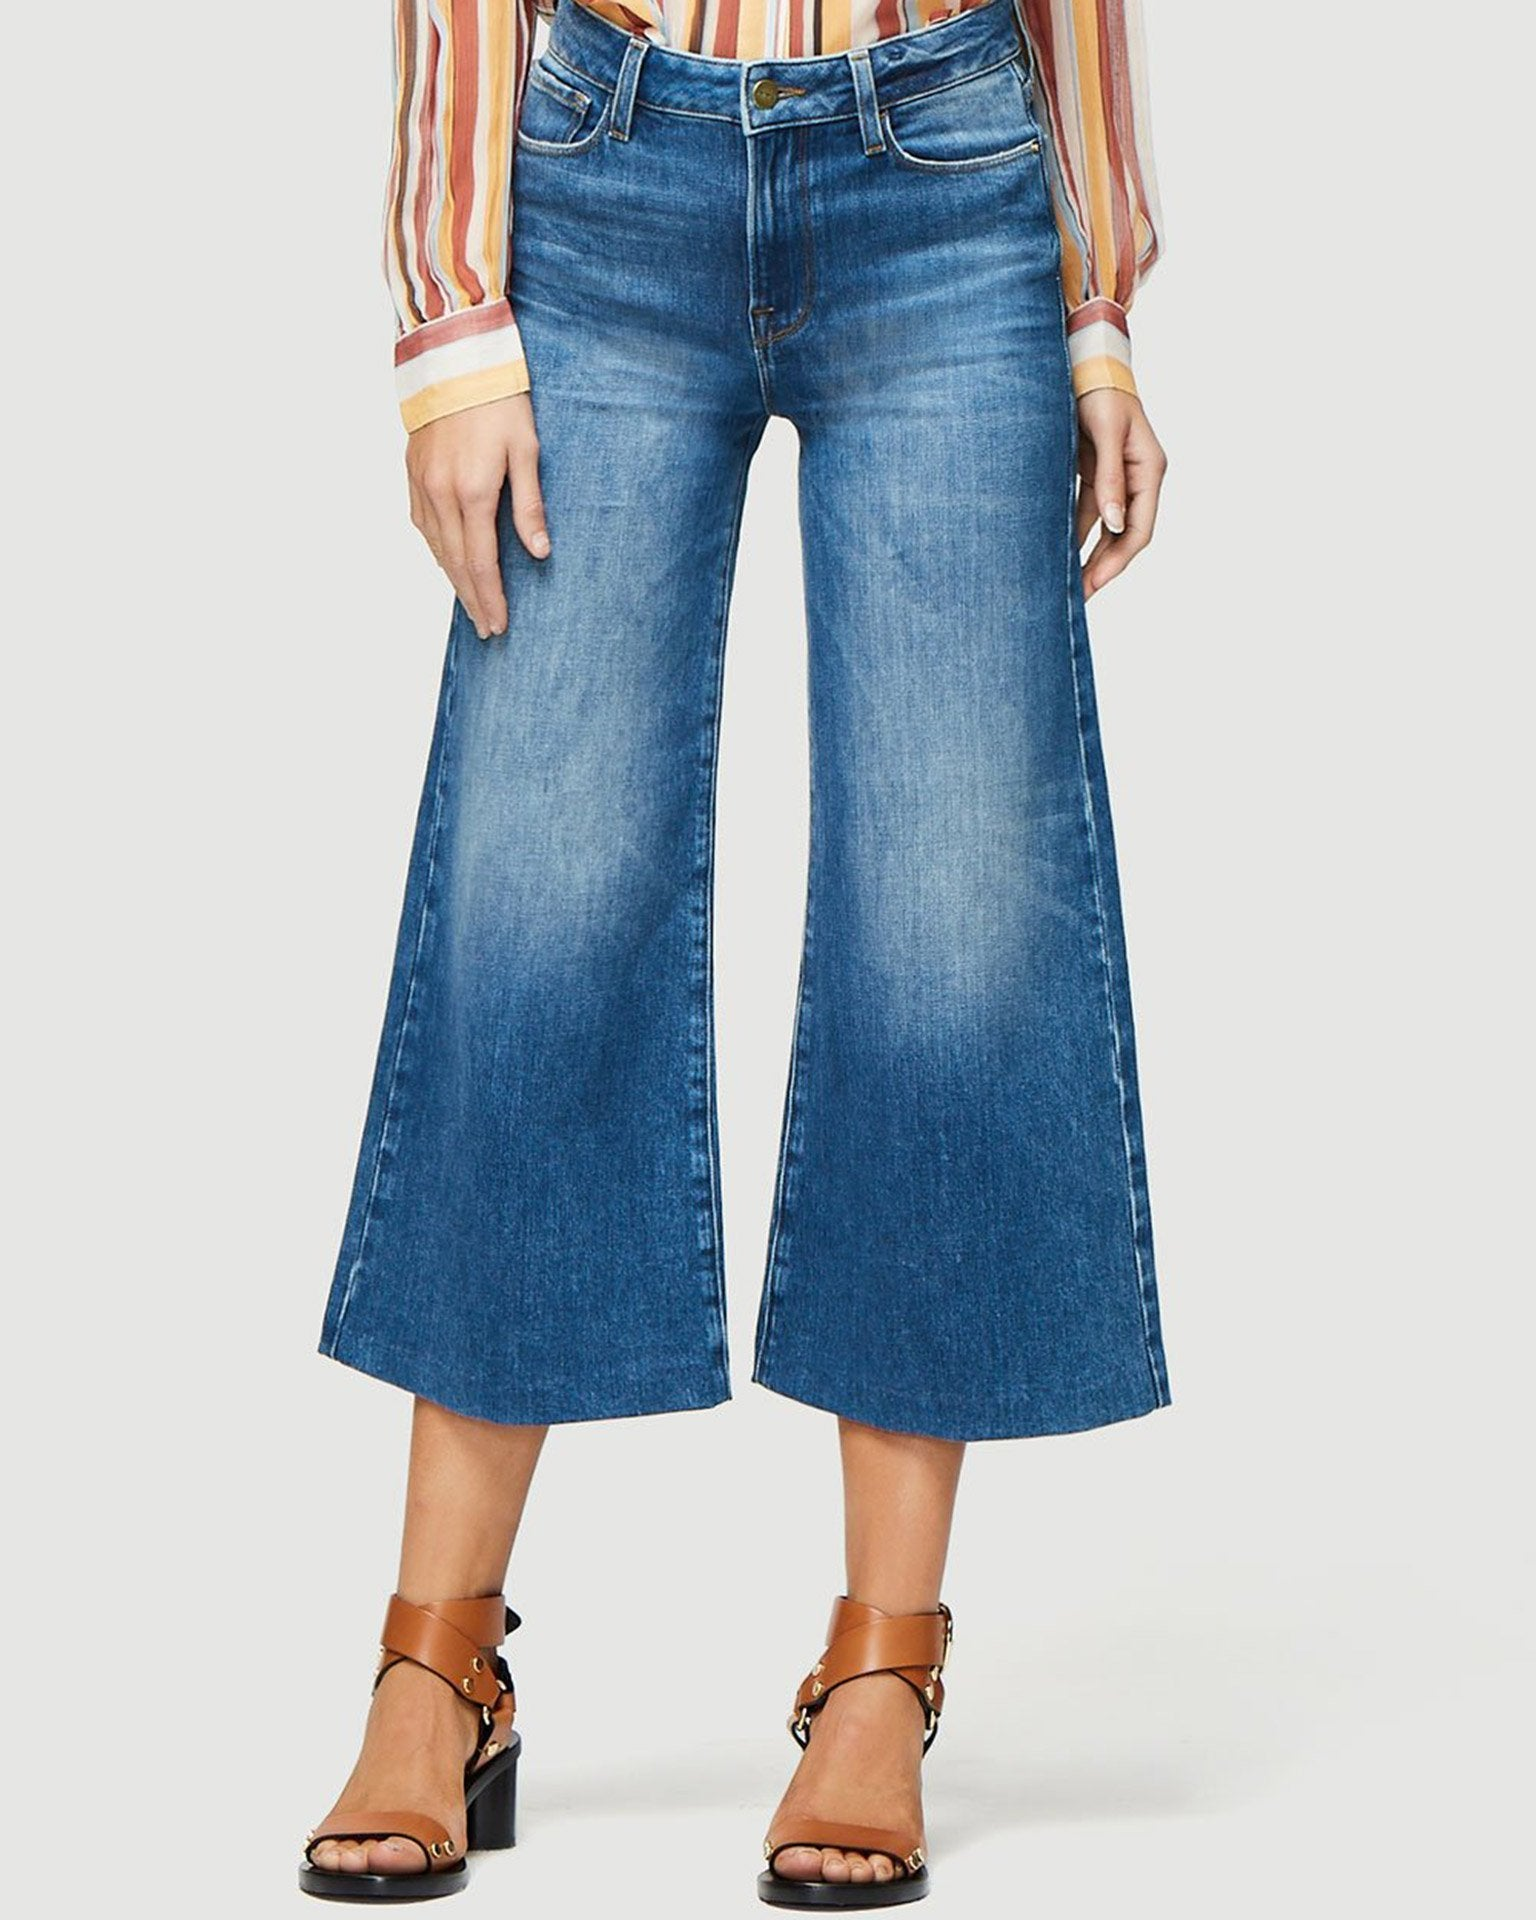 Frame Denim Webster / 24 Le Vintage Crop Blindstitch in Webster